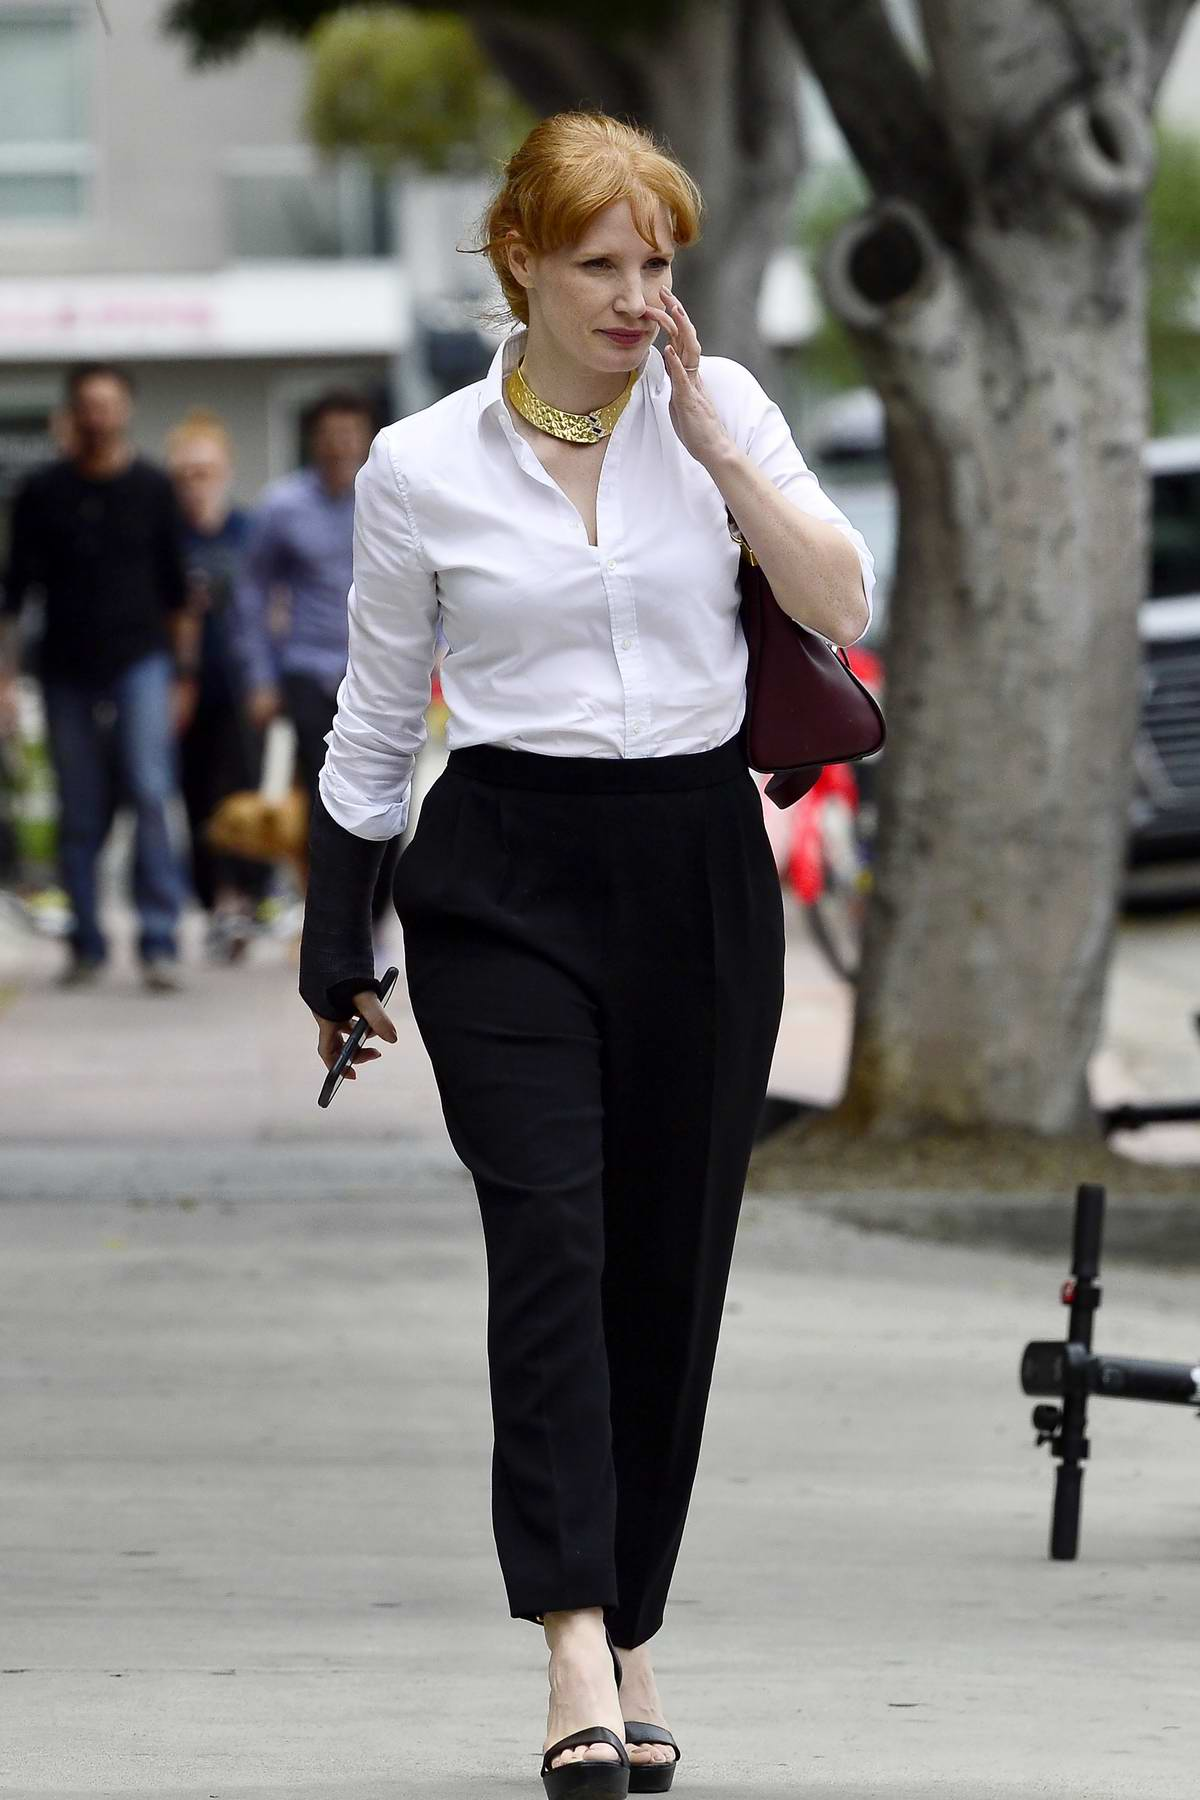 Jessica Chastain steps out in white shirt, black trousers and a wrist brace for a breakfast meeting in Los Angeles